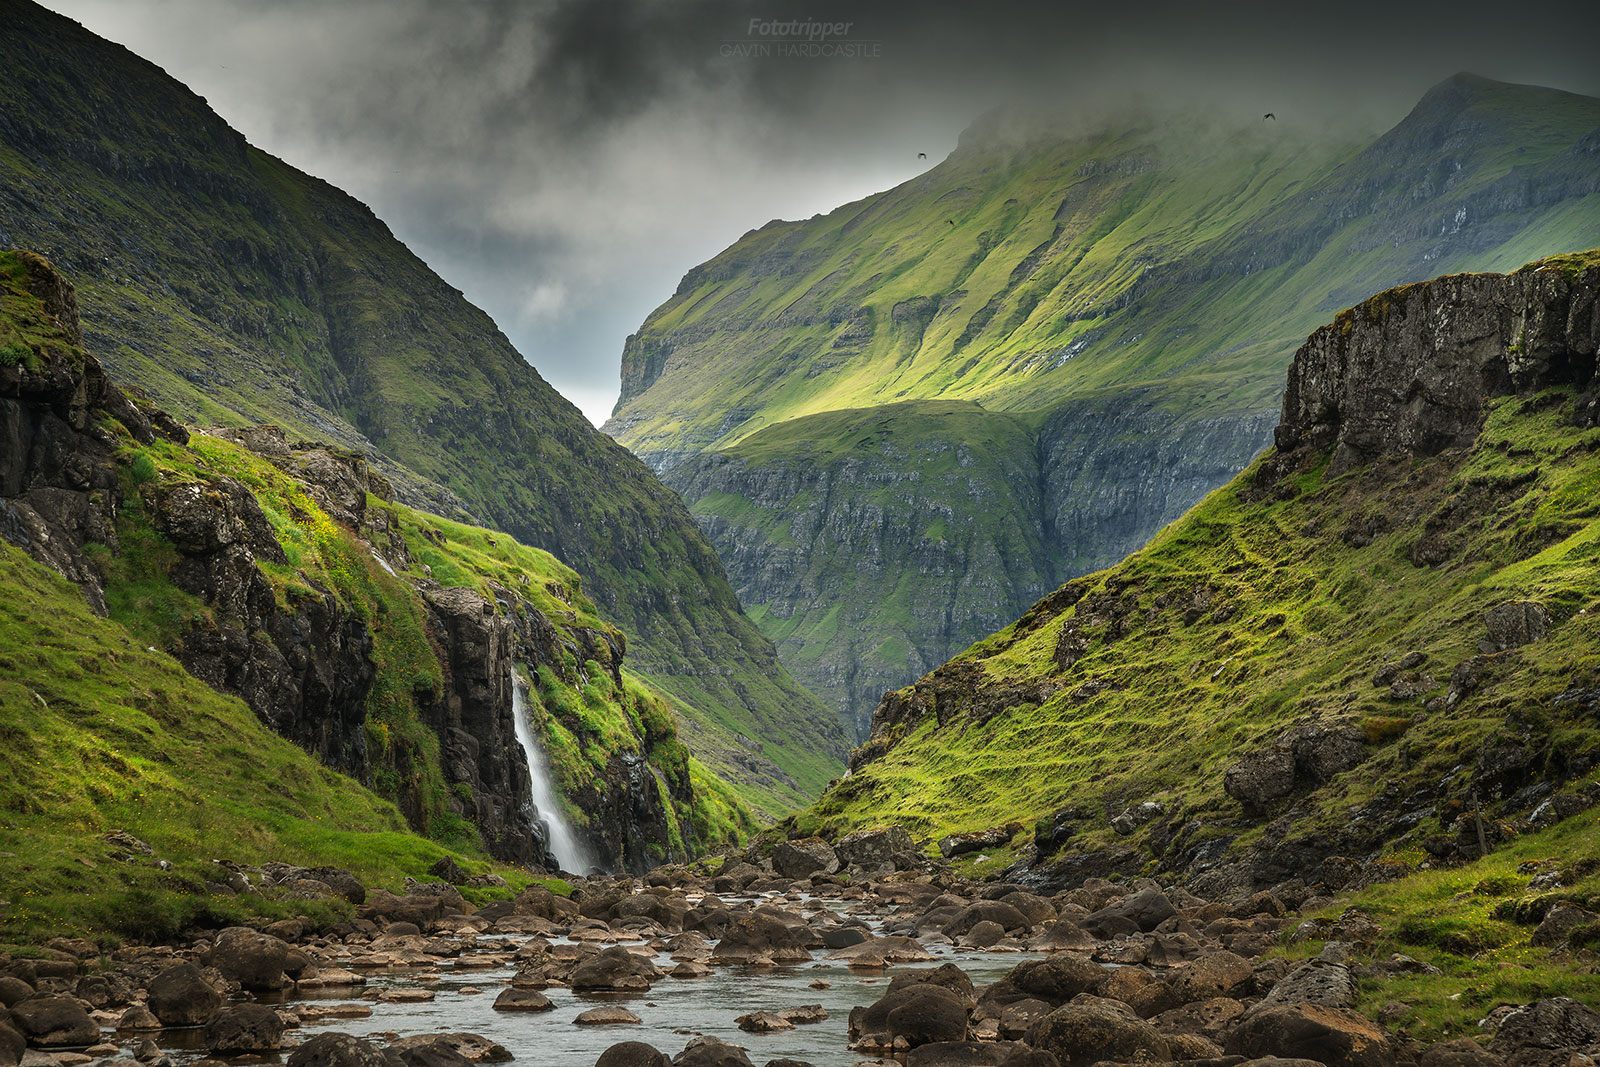 Photography Workshops in Faroe Islands